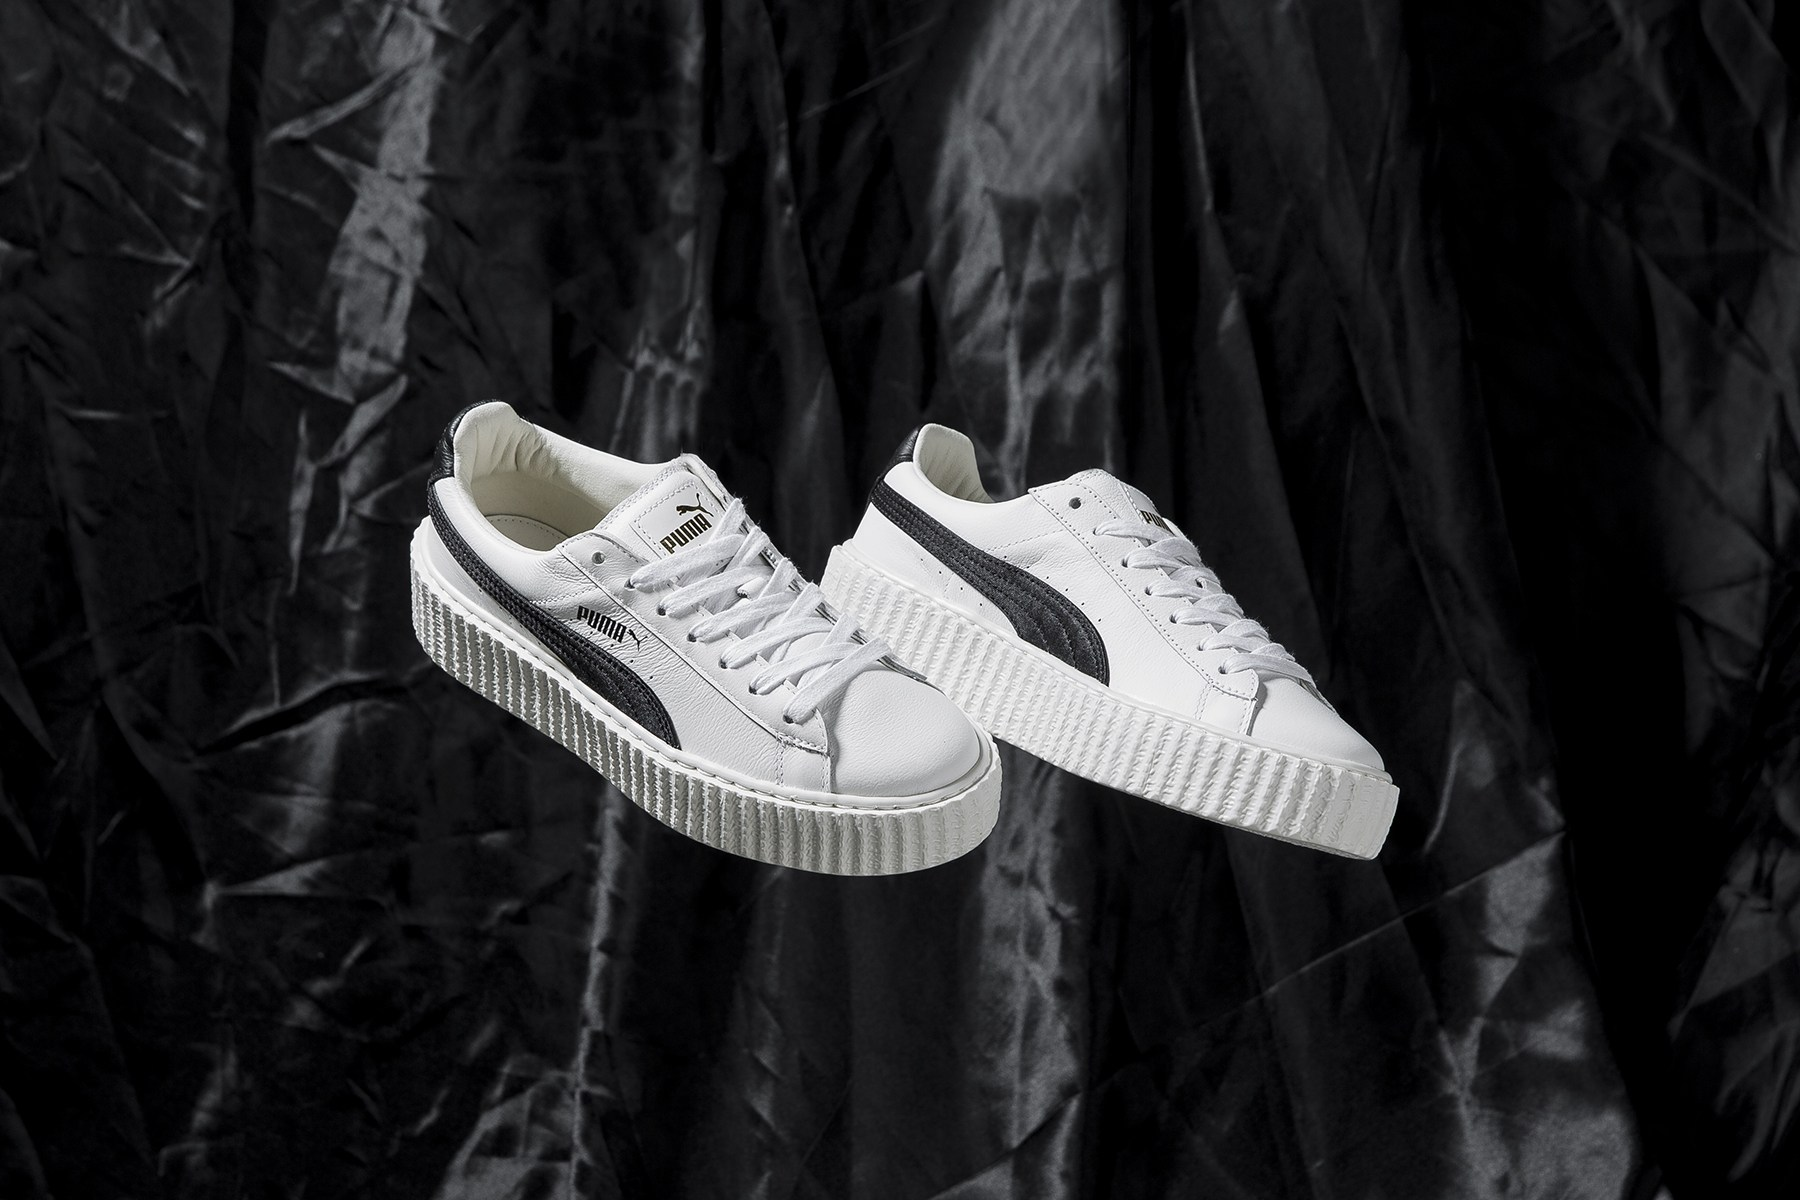 fenty-puma-cracked-leather-creeper-black-white-3